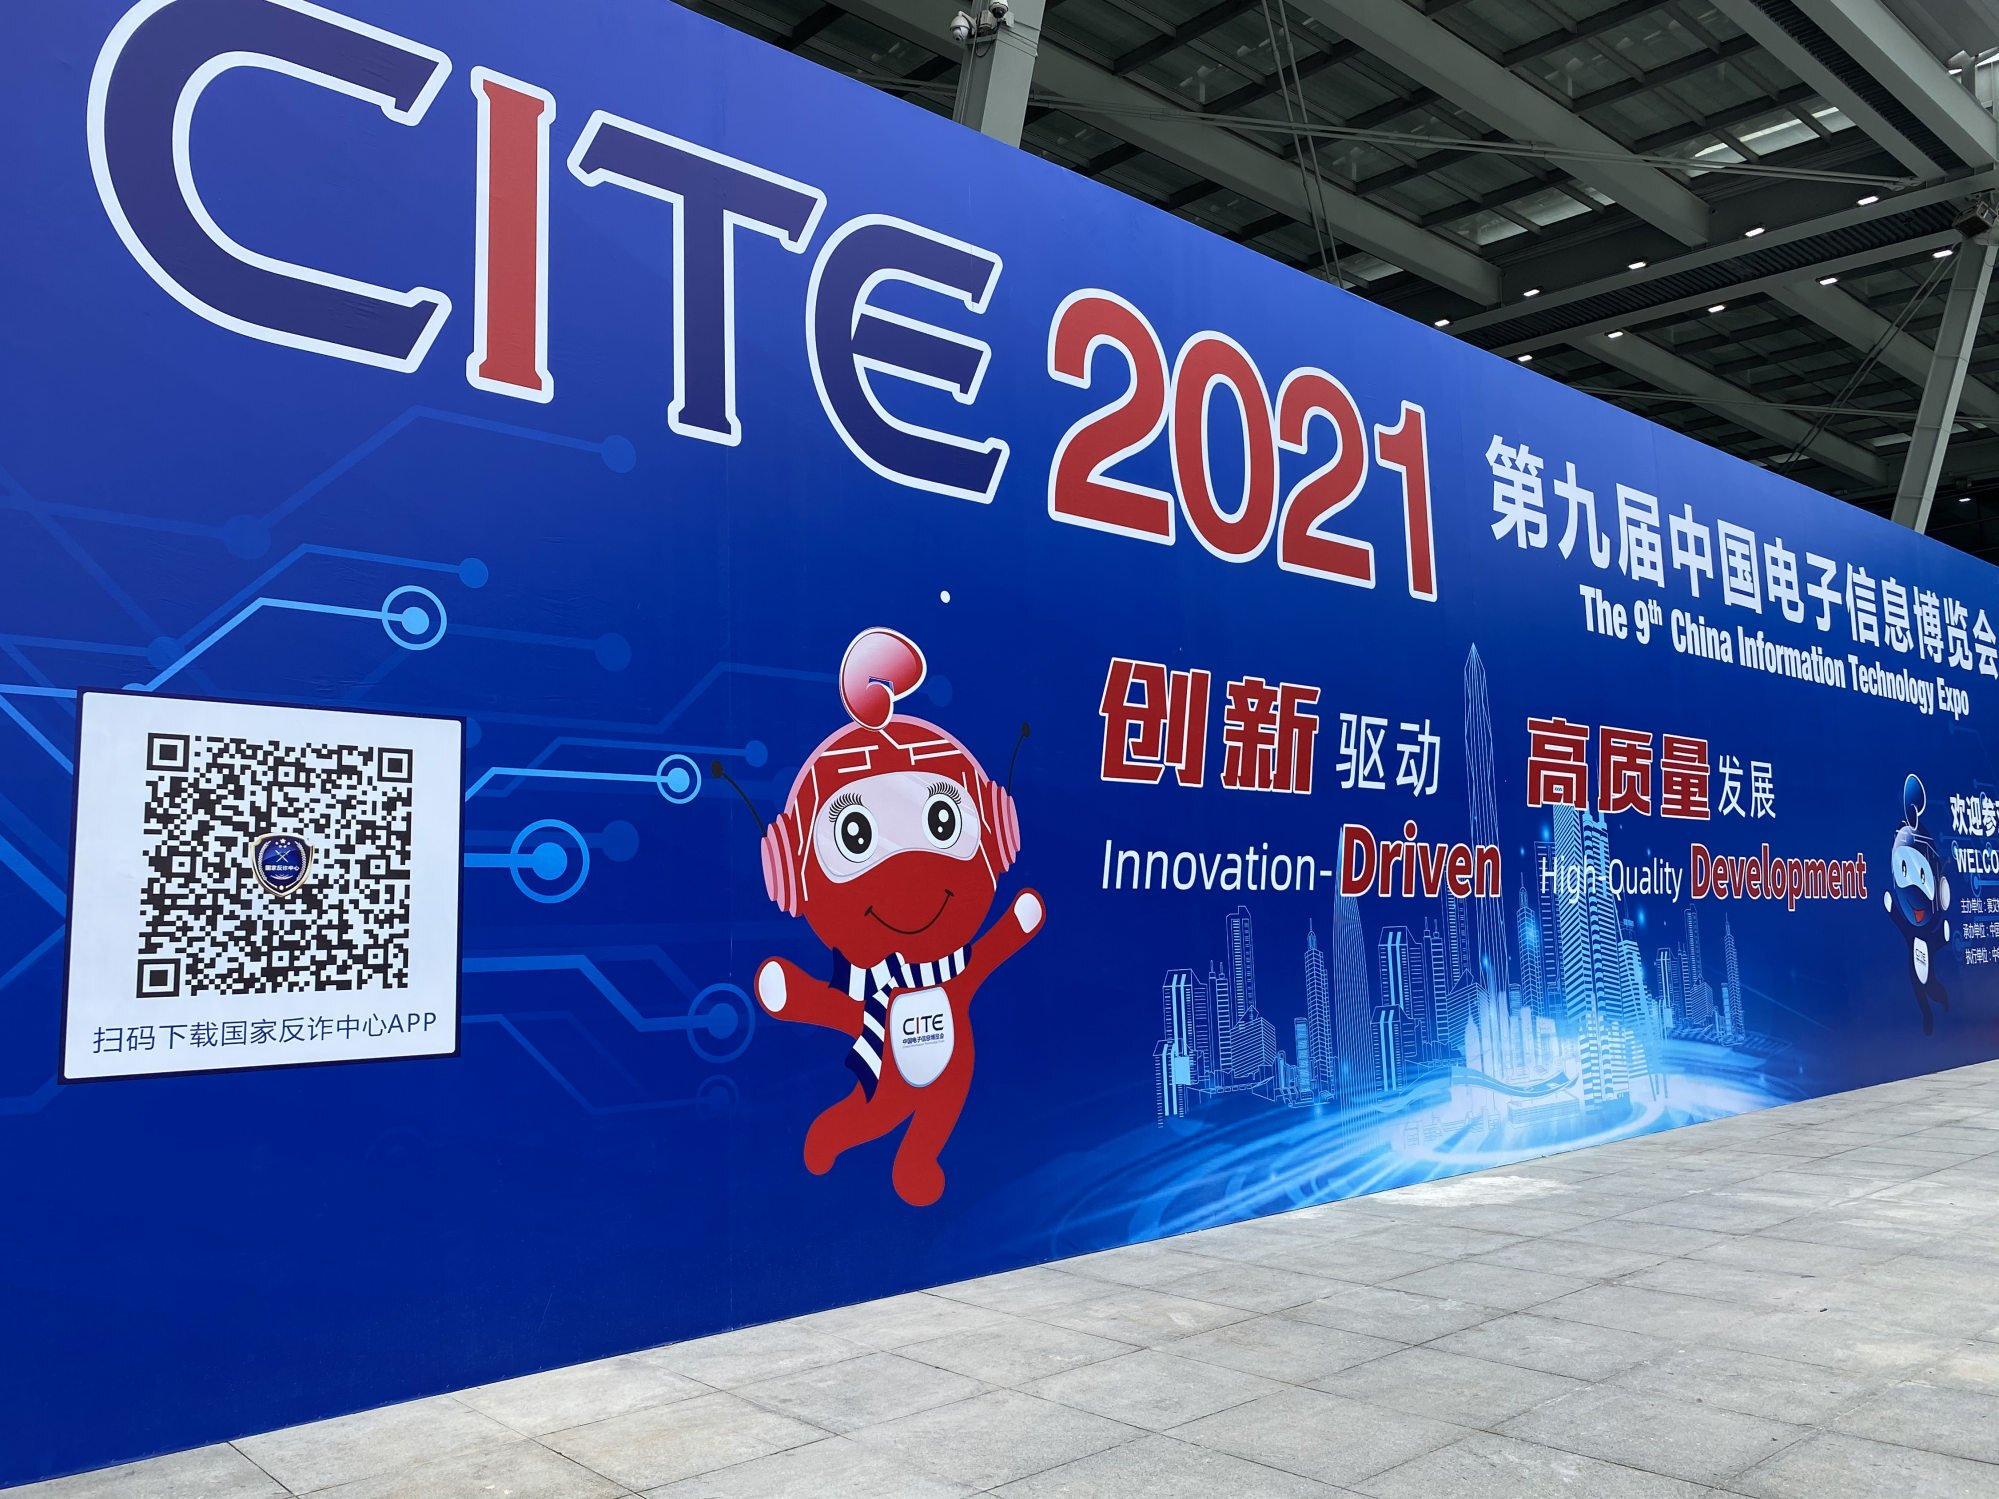 Attendees are required to scan a QR code to download the anti-fraud app before they are allowed to enter the Shenzhen Convention and Exhibition Center during the China Information Technology Expo. Photo: Yujie Xue